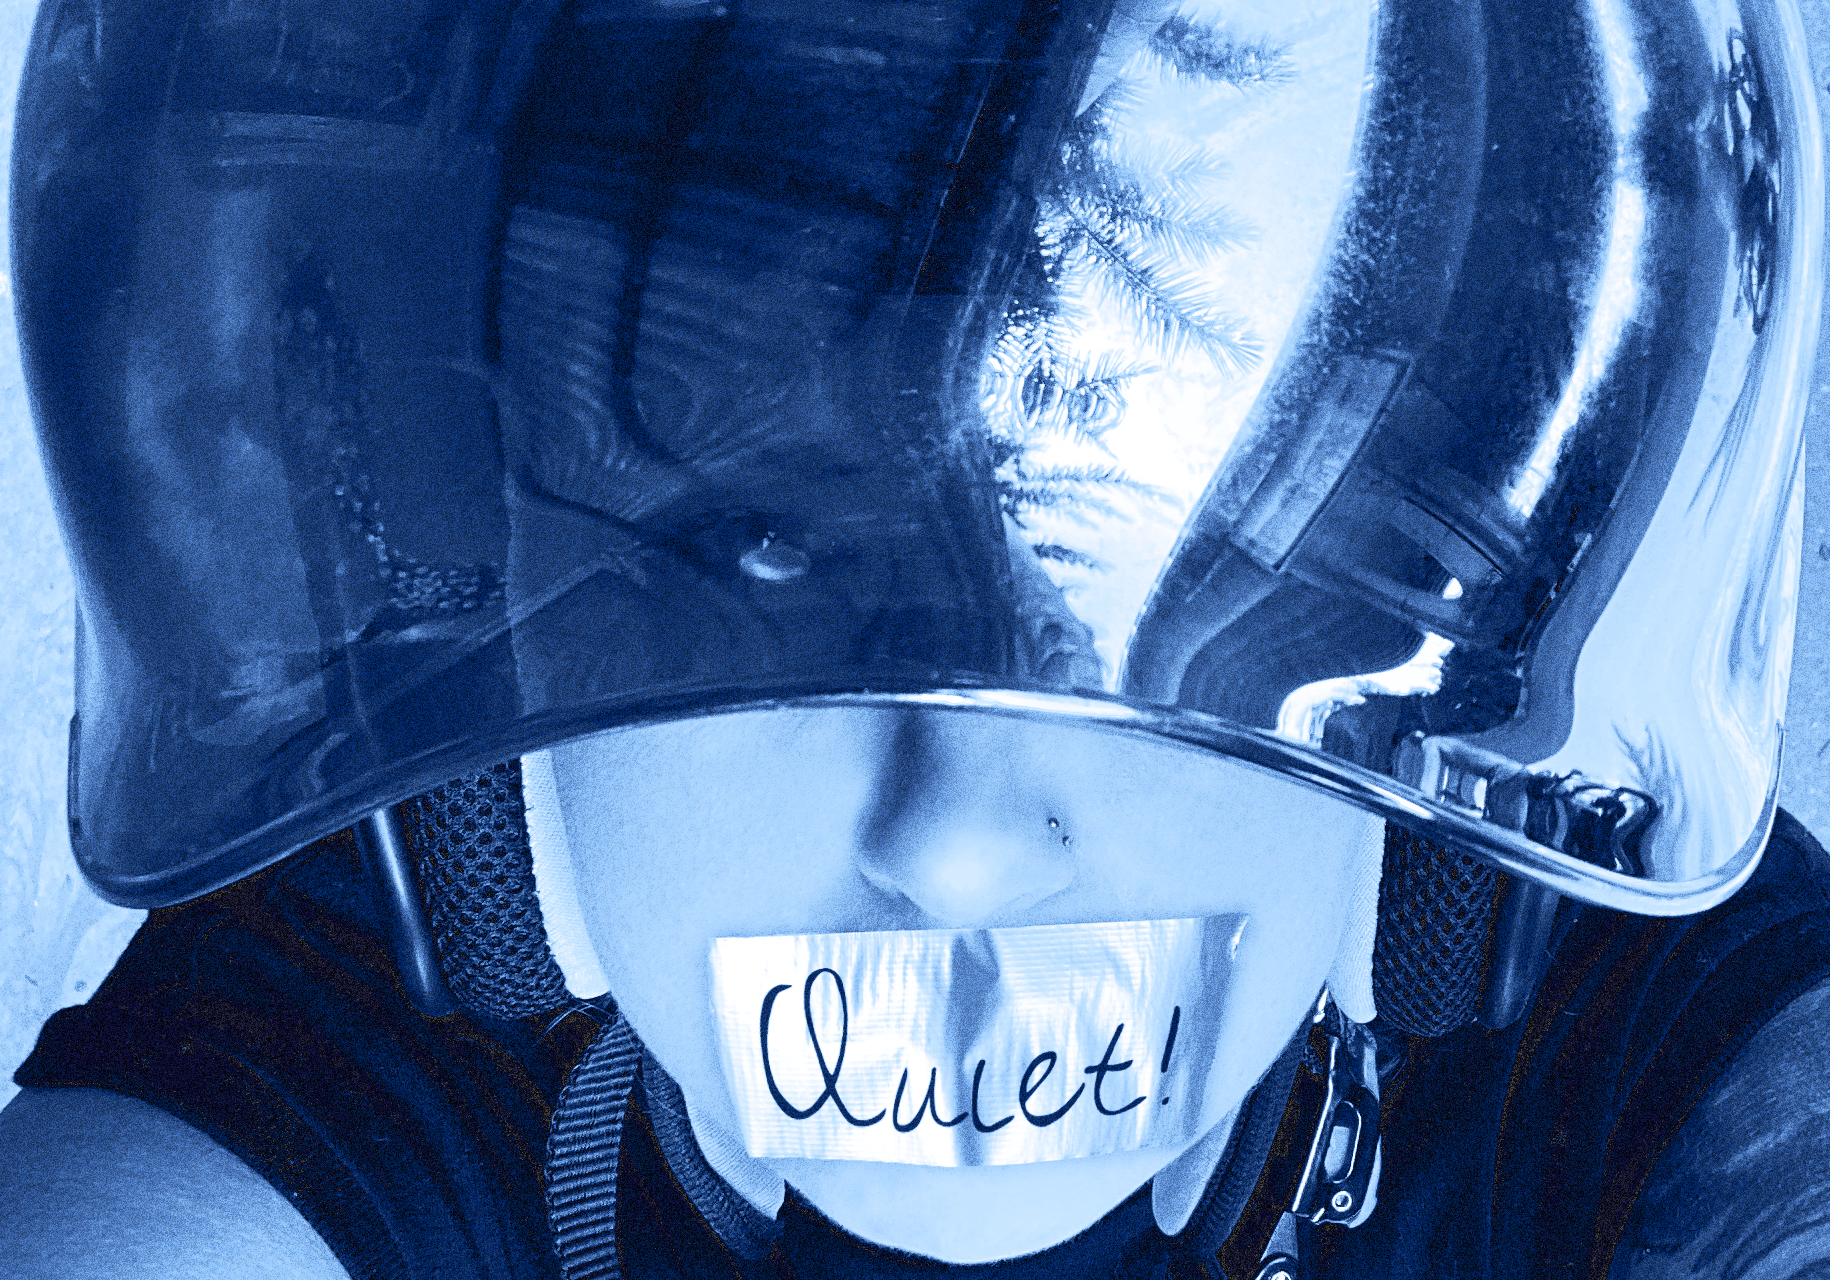 Wearing my motorcycle helmet with duck tape over my mouth, on the tape it says 'Quiet!'